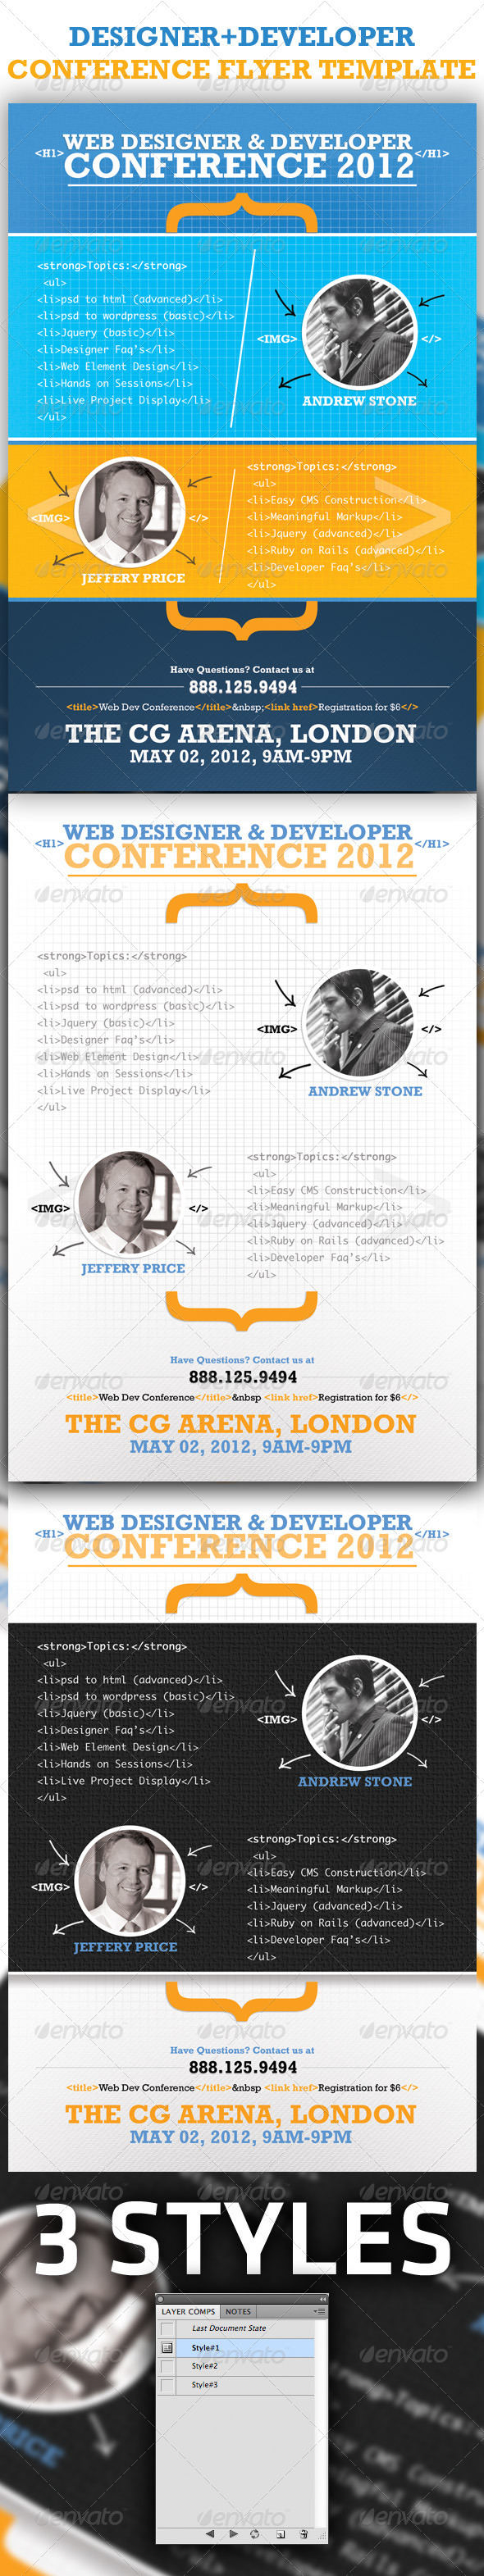 Web Designer & Developer Conference Flyer Template